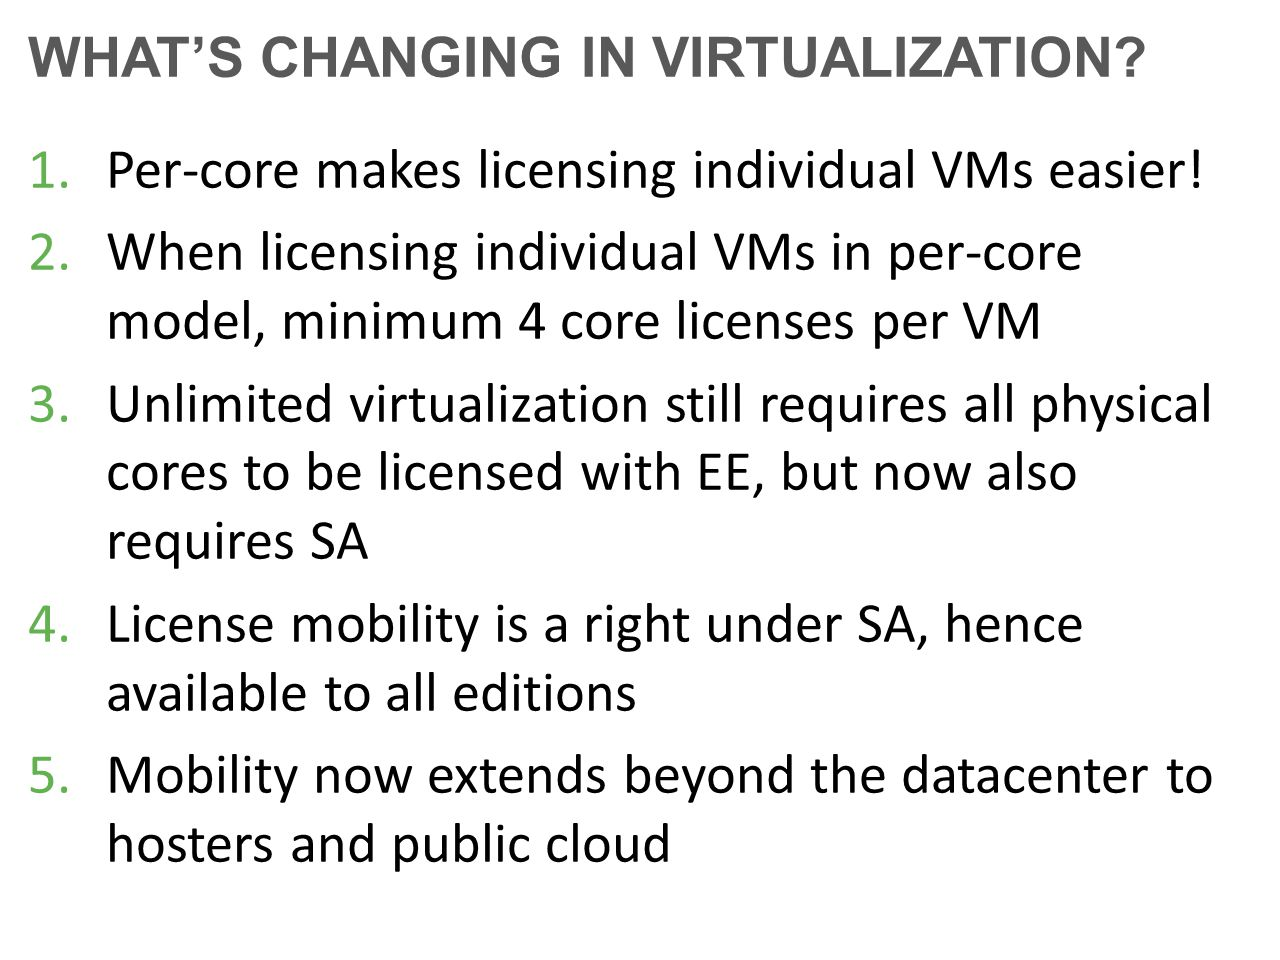 WHAT'S CHANGING IN VIRTUALIZATION? 1.Per-core makes licensing individual VMs easier! 2.When licensing individual VMs in per-core model, minimum 4 core